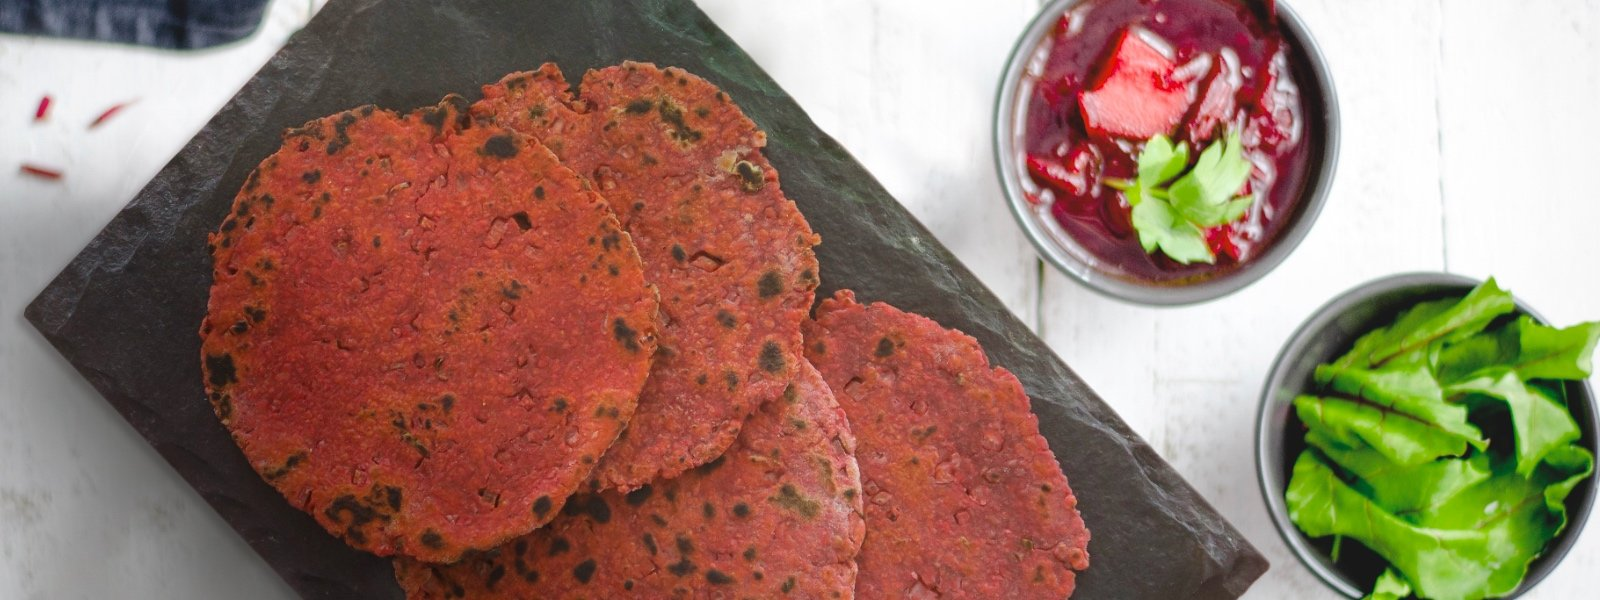 Oats And Beetroot Roti